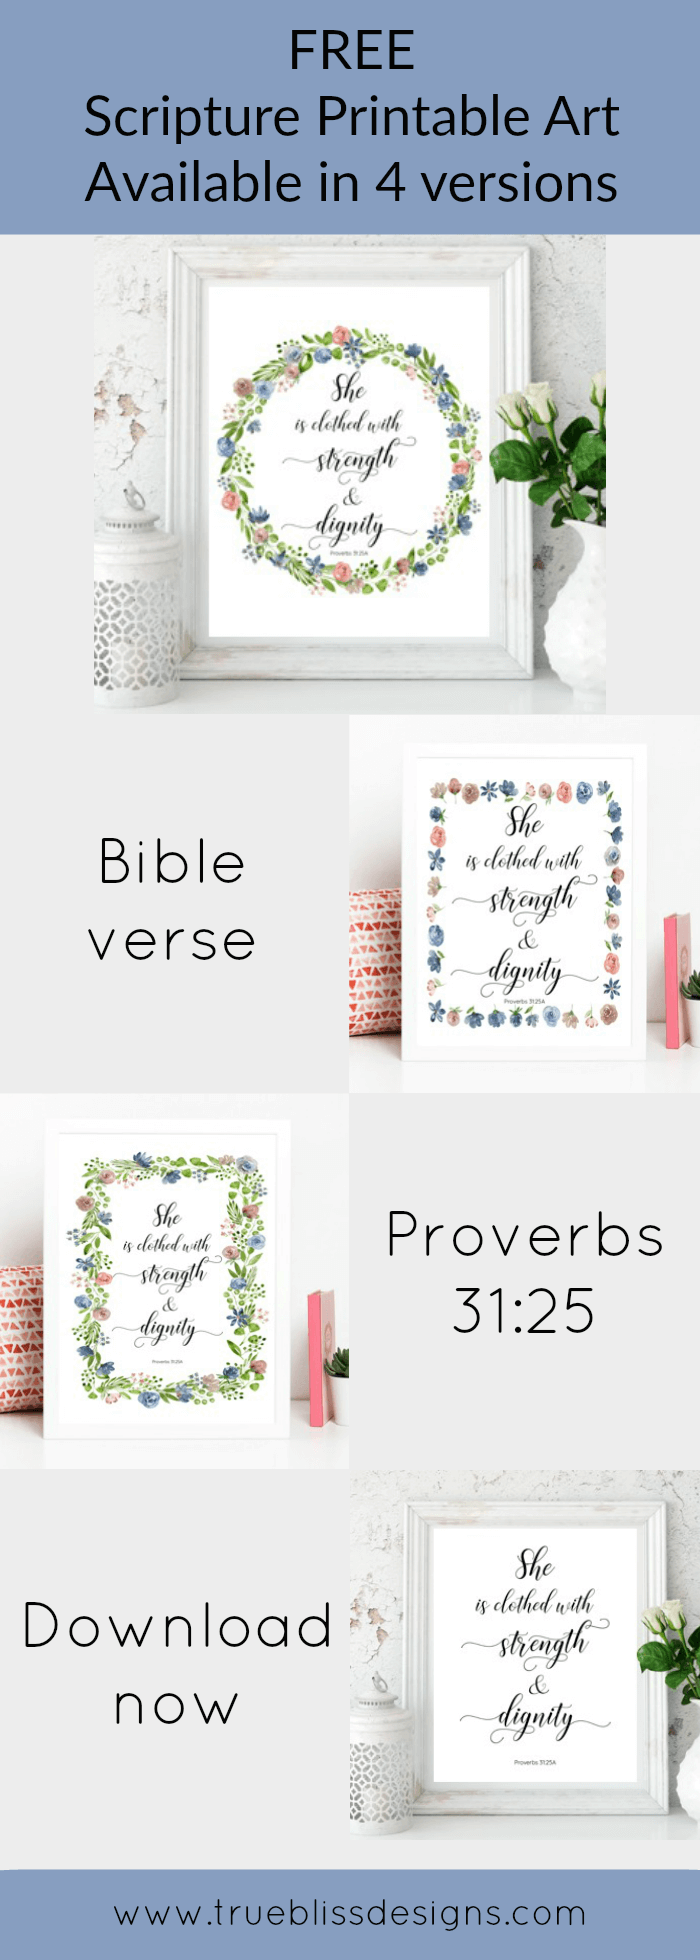 Free printable art scripture quotes from Proverbs 31.25